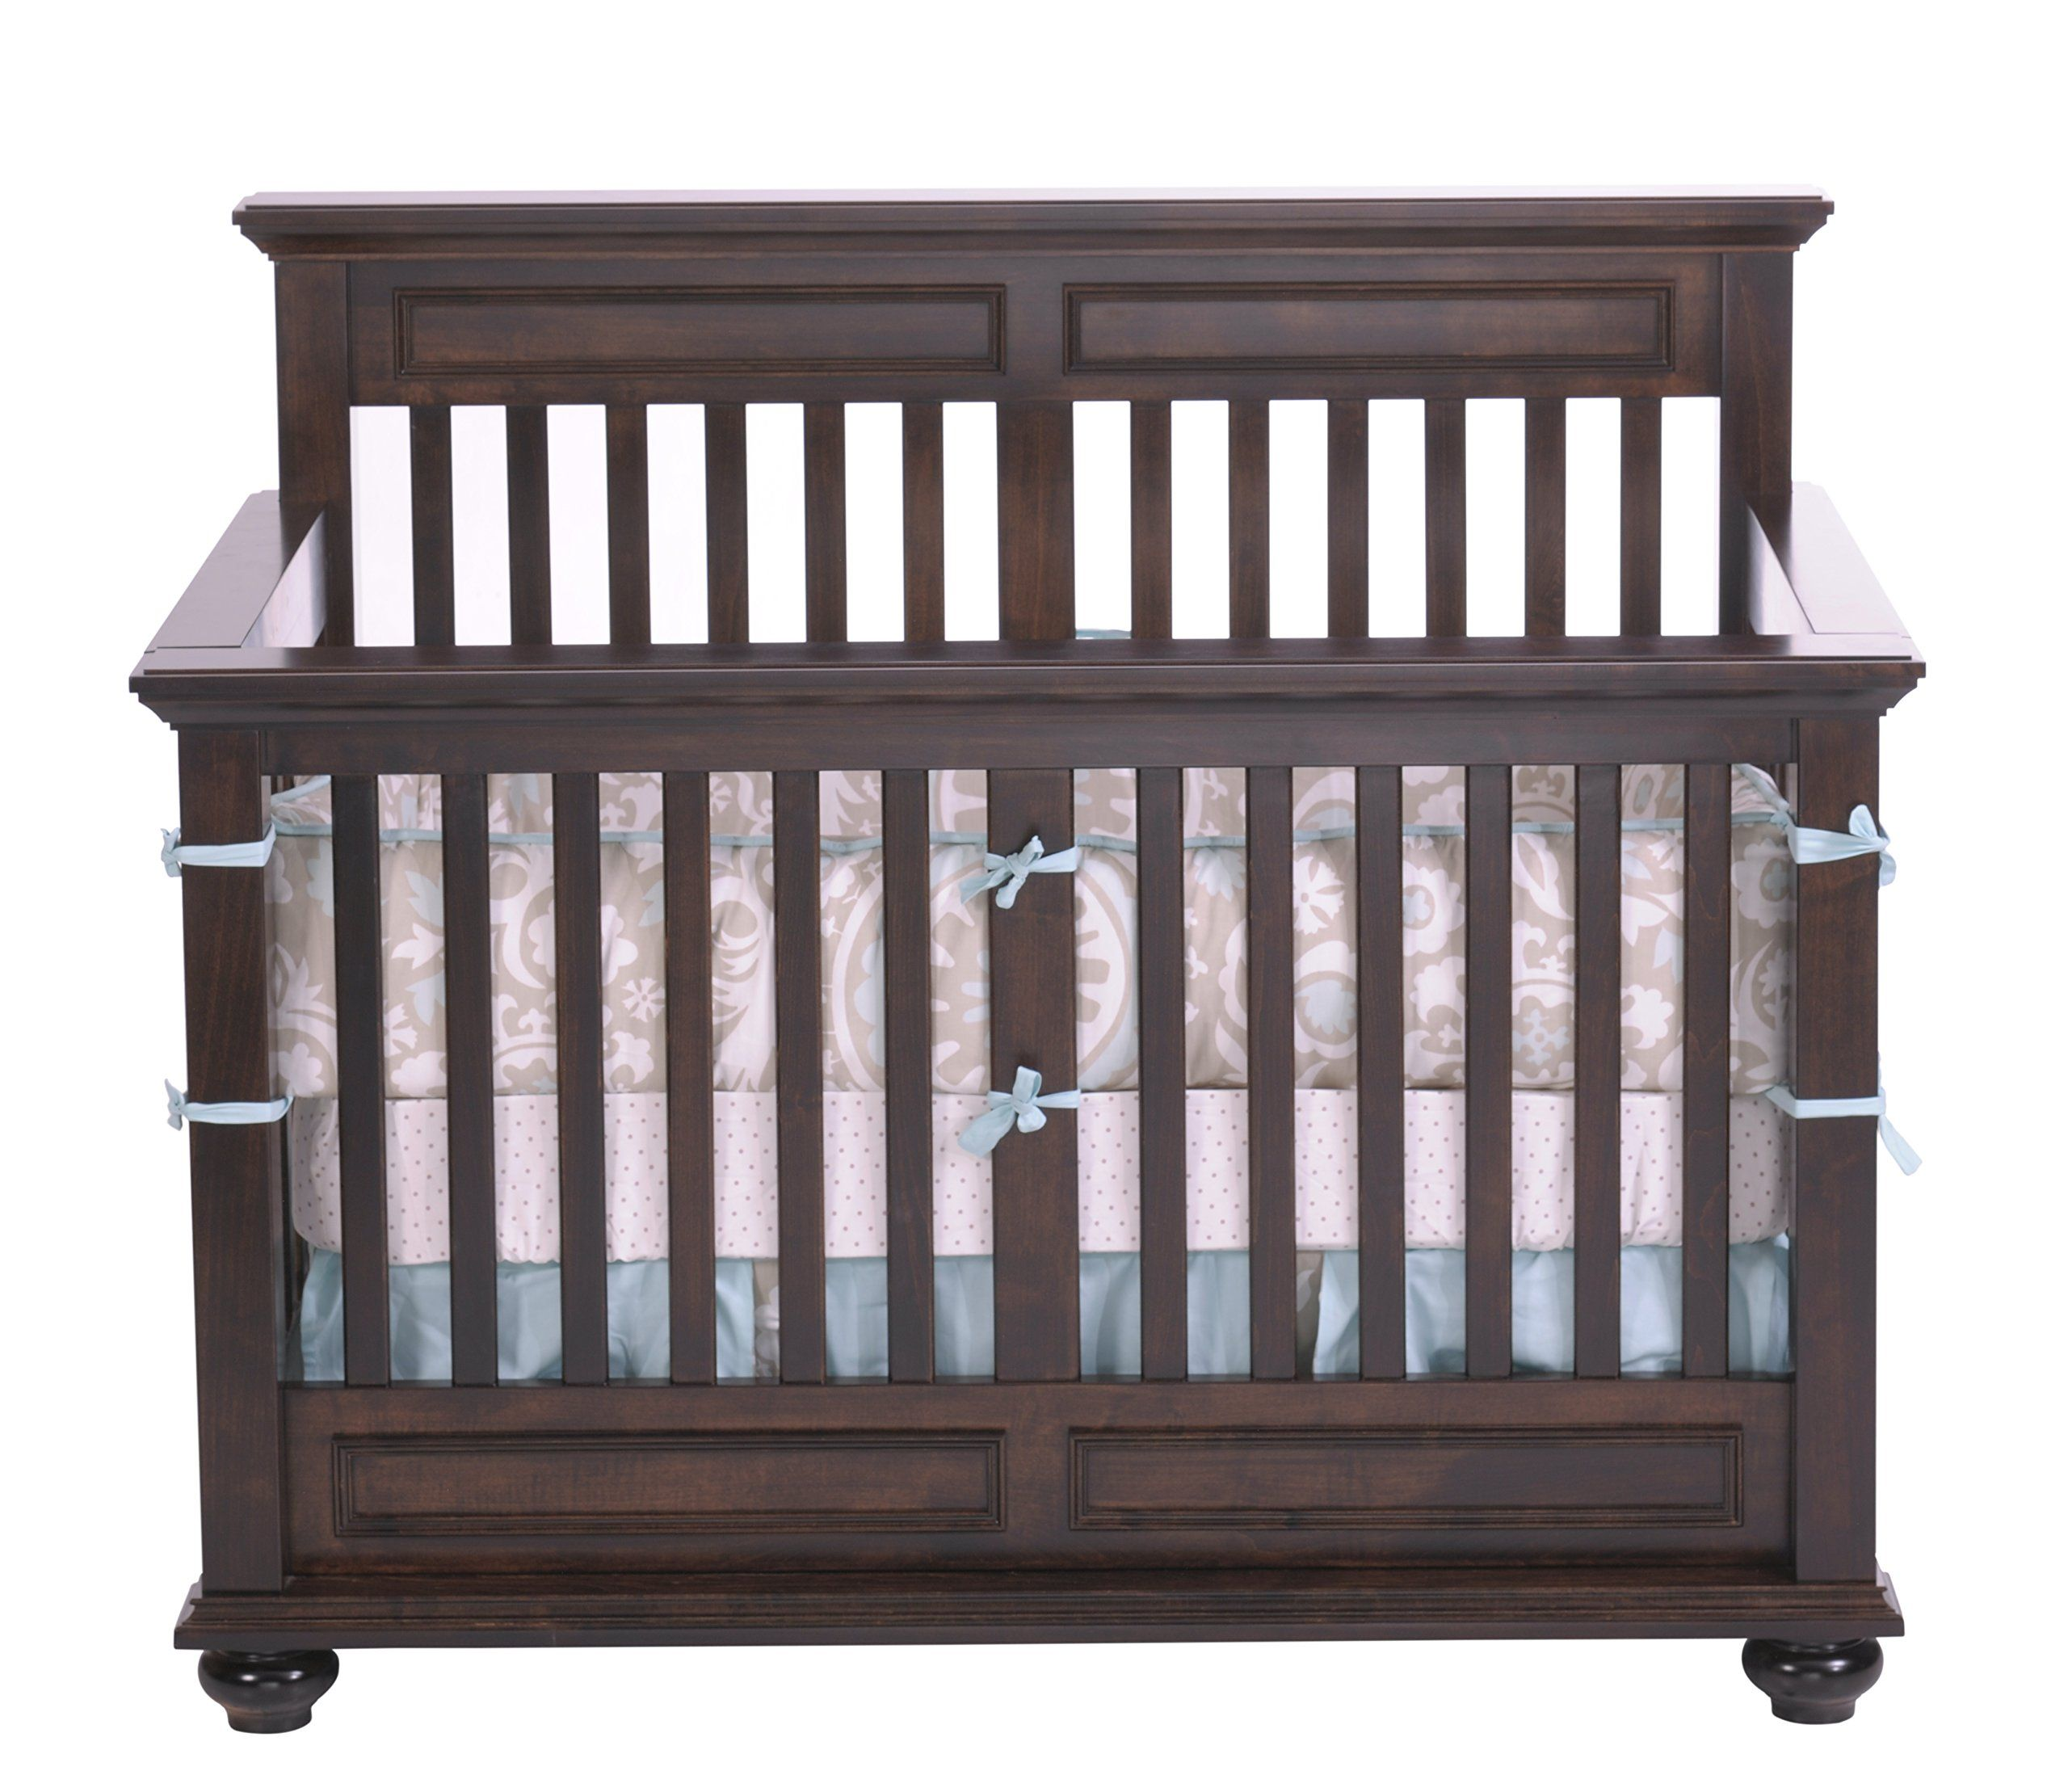 Baby cribs not made in china - Capretti Design Umbria Convertible Crib Natural Scratch Resistant Finish Made Of 100